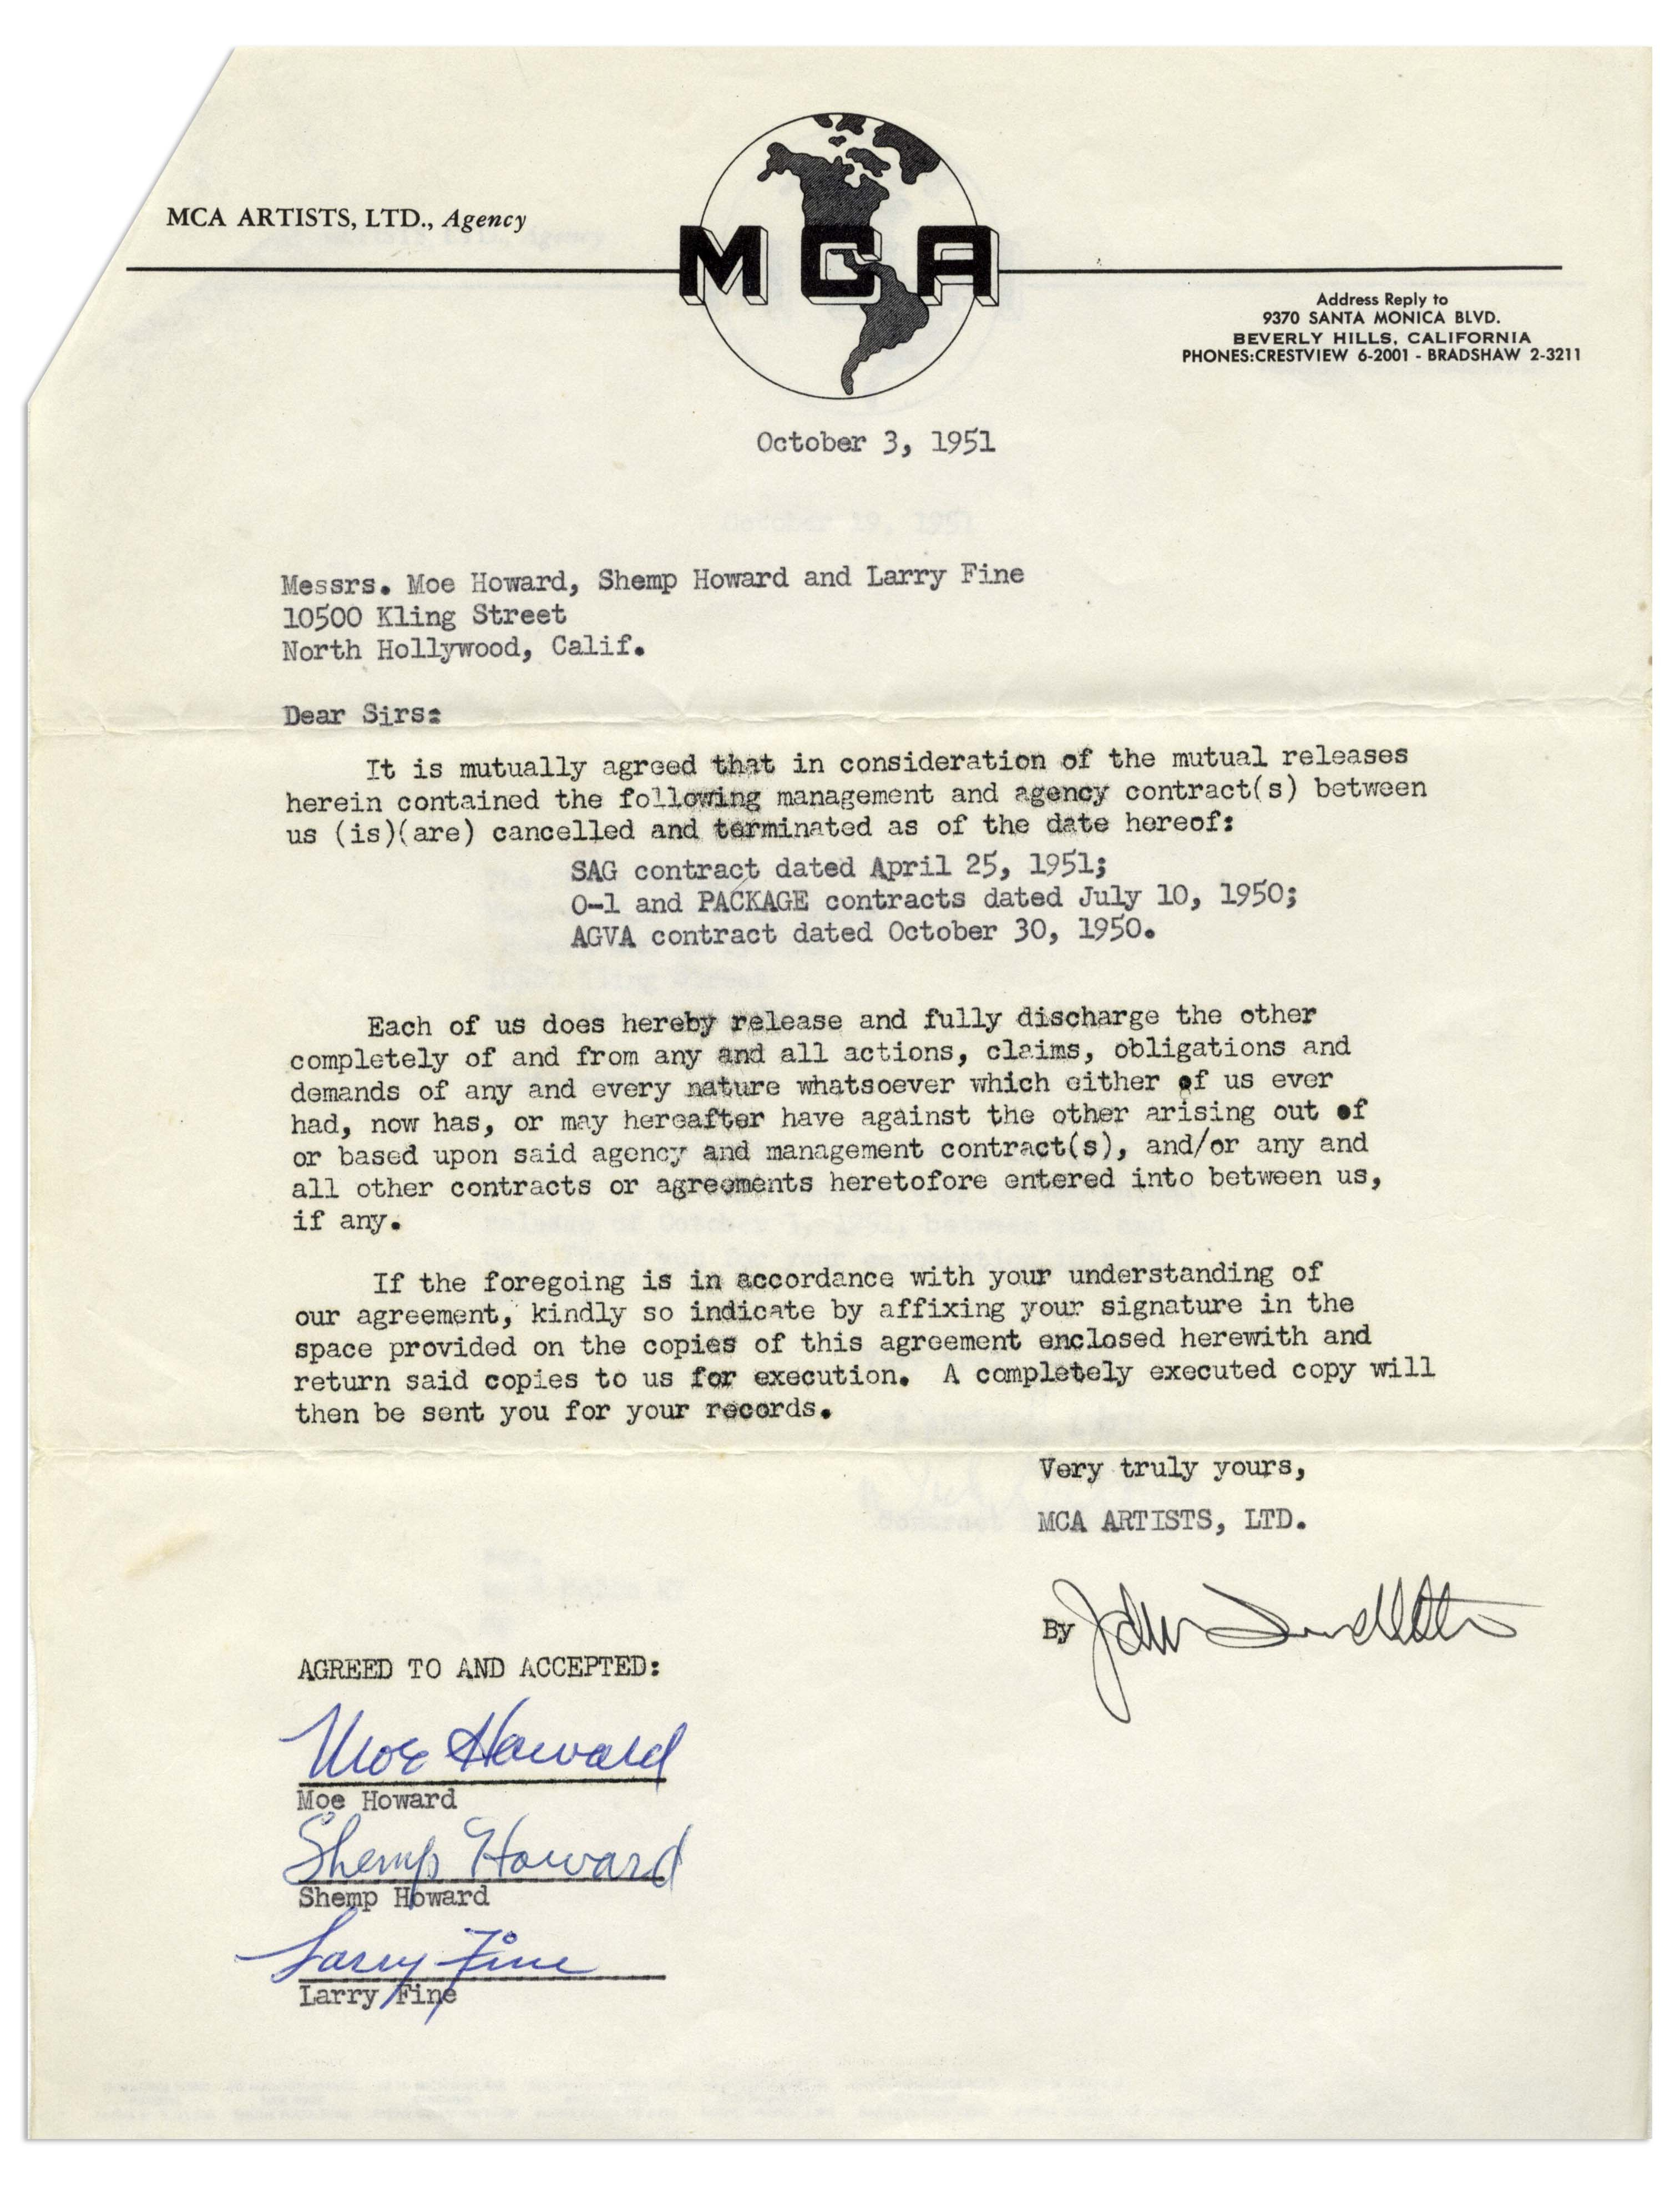 Termination And Mutual Release Agreement Lot Detail Three Stooges Signed Contract Termination From 1951